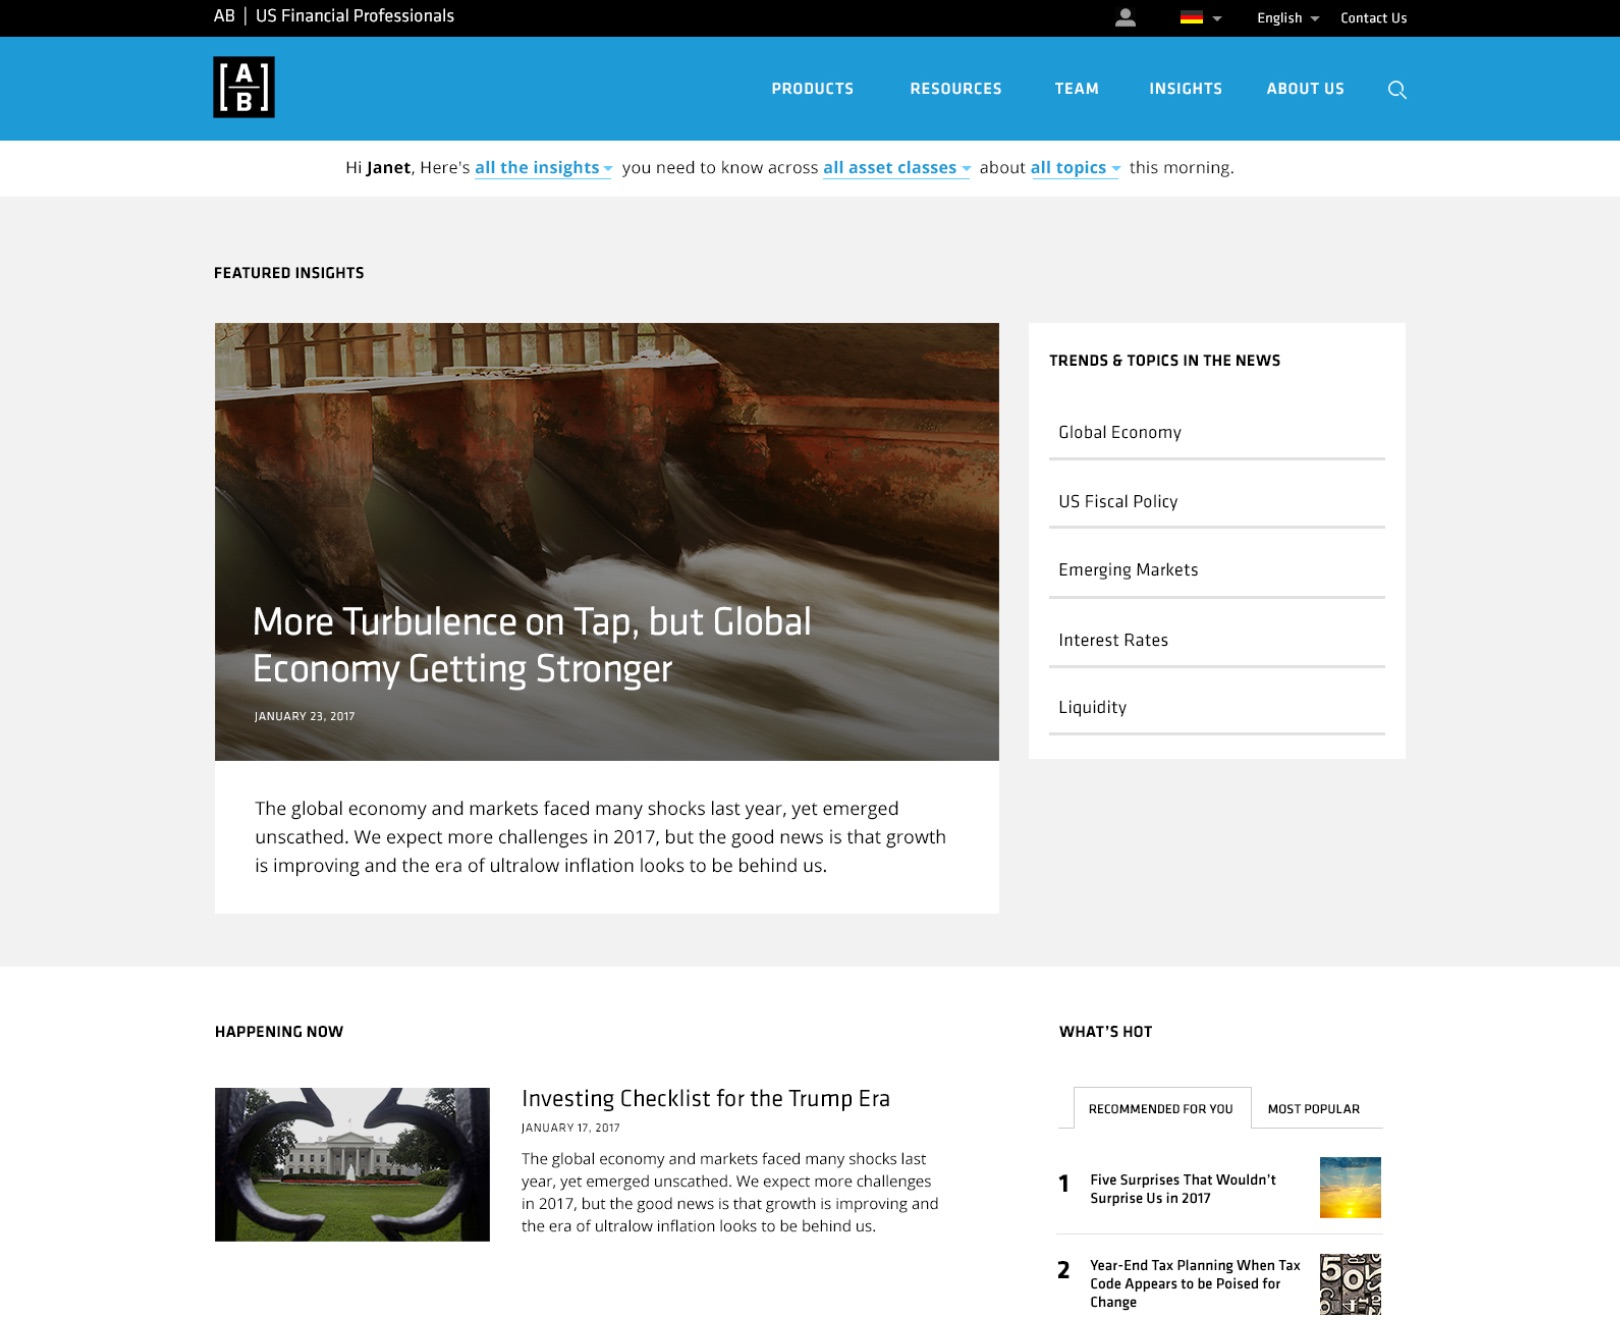 Deliver - Delivered final page designs and style guideCreated content guidelines